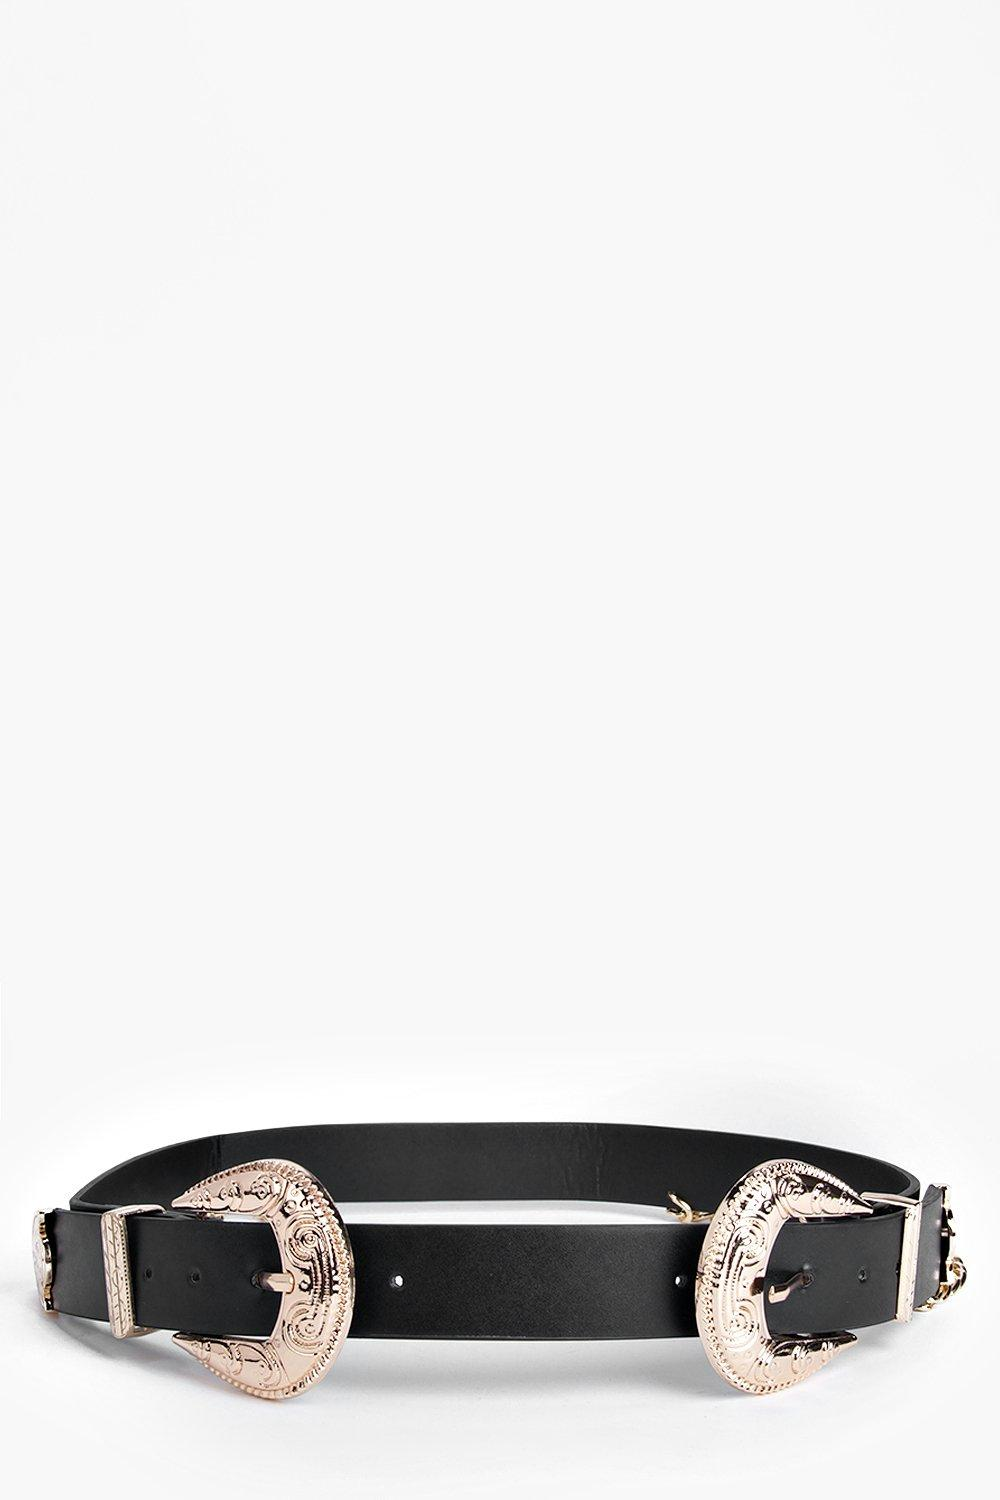 Lois Chain Double Buckle Western Belt